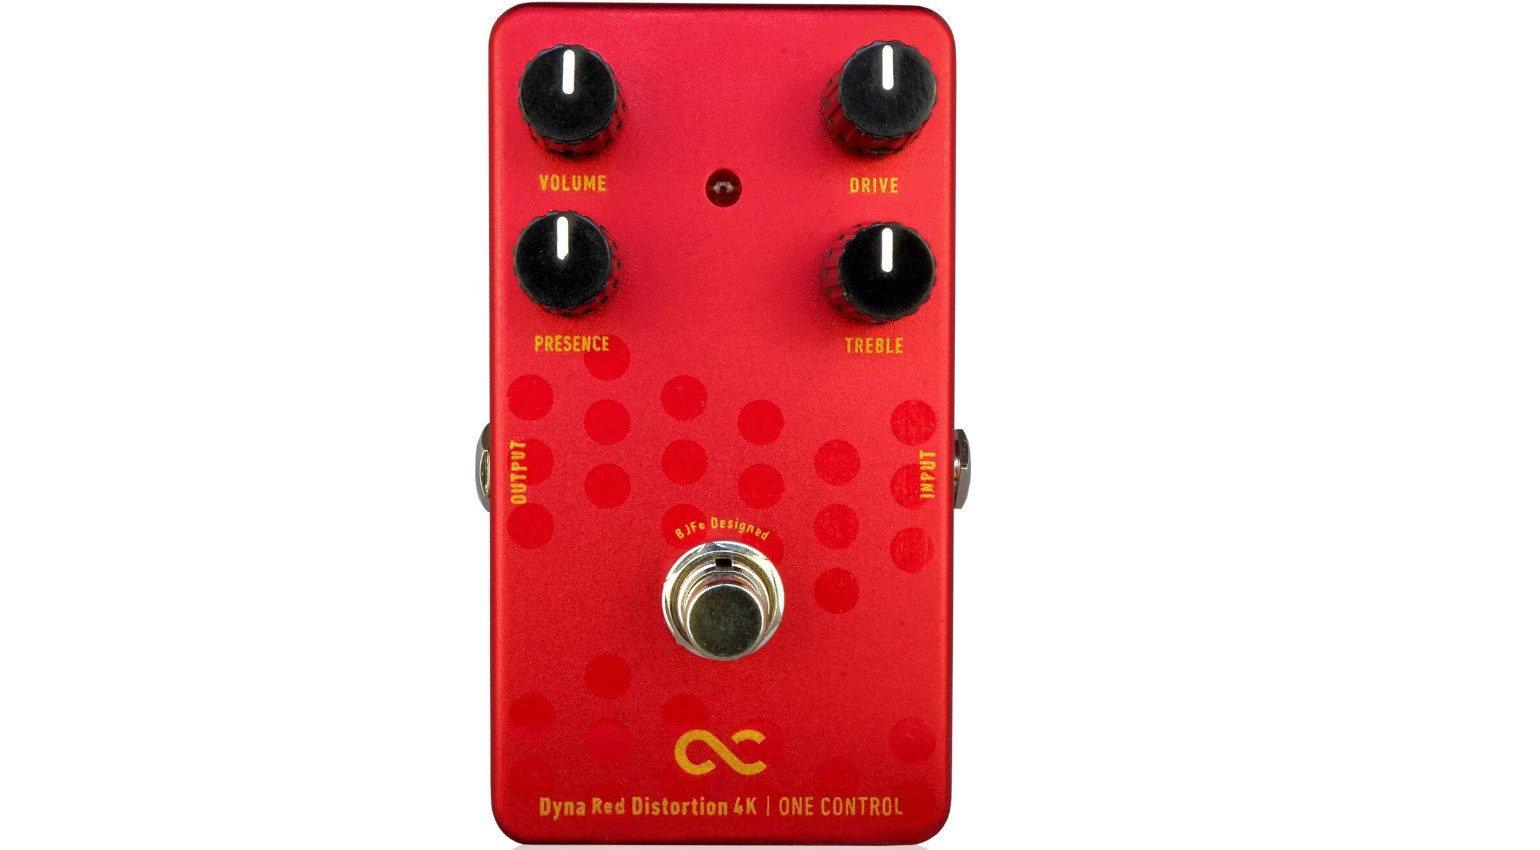 One Control BJFE Pedals Dyna Red Distortion 4K